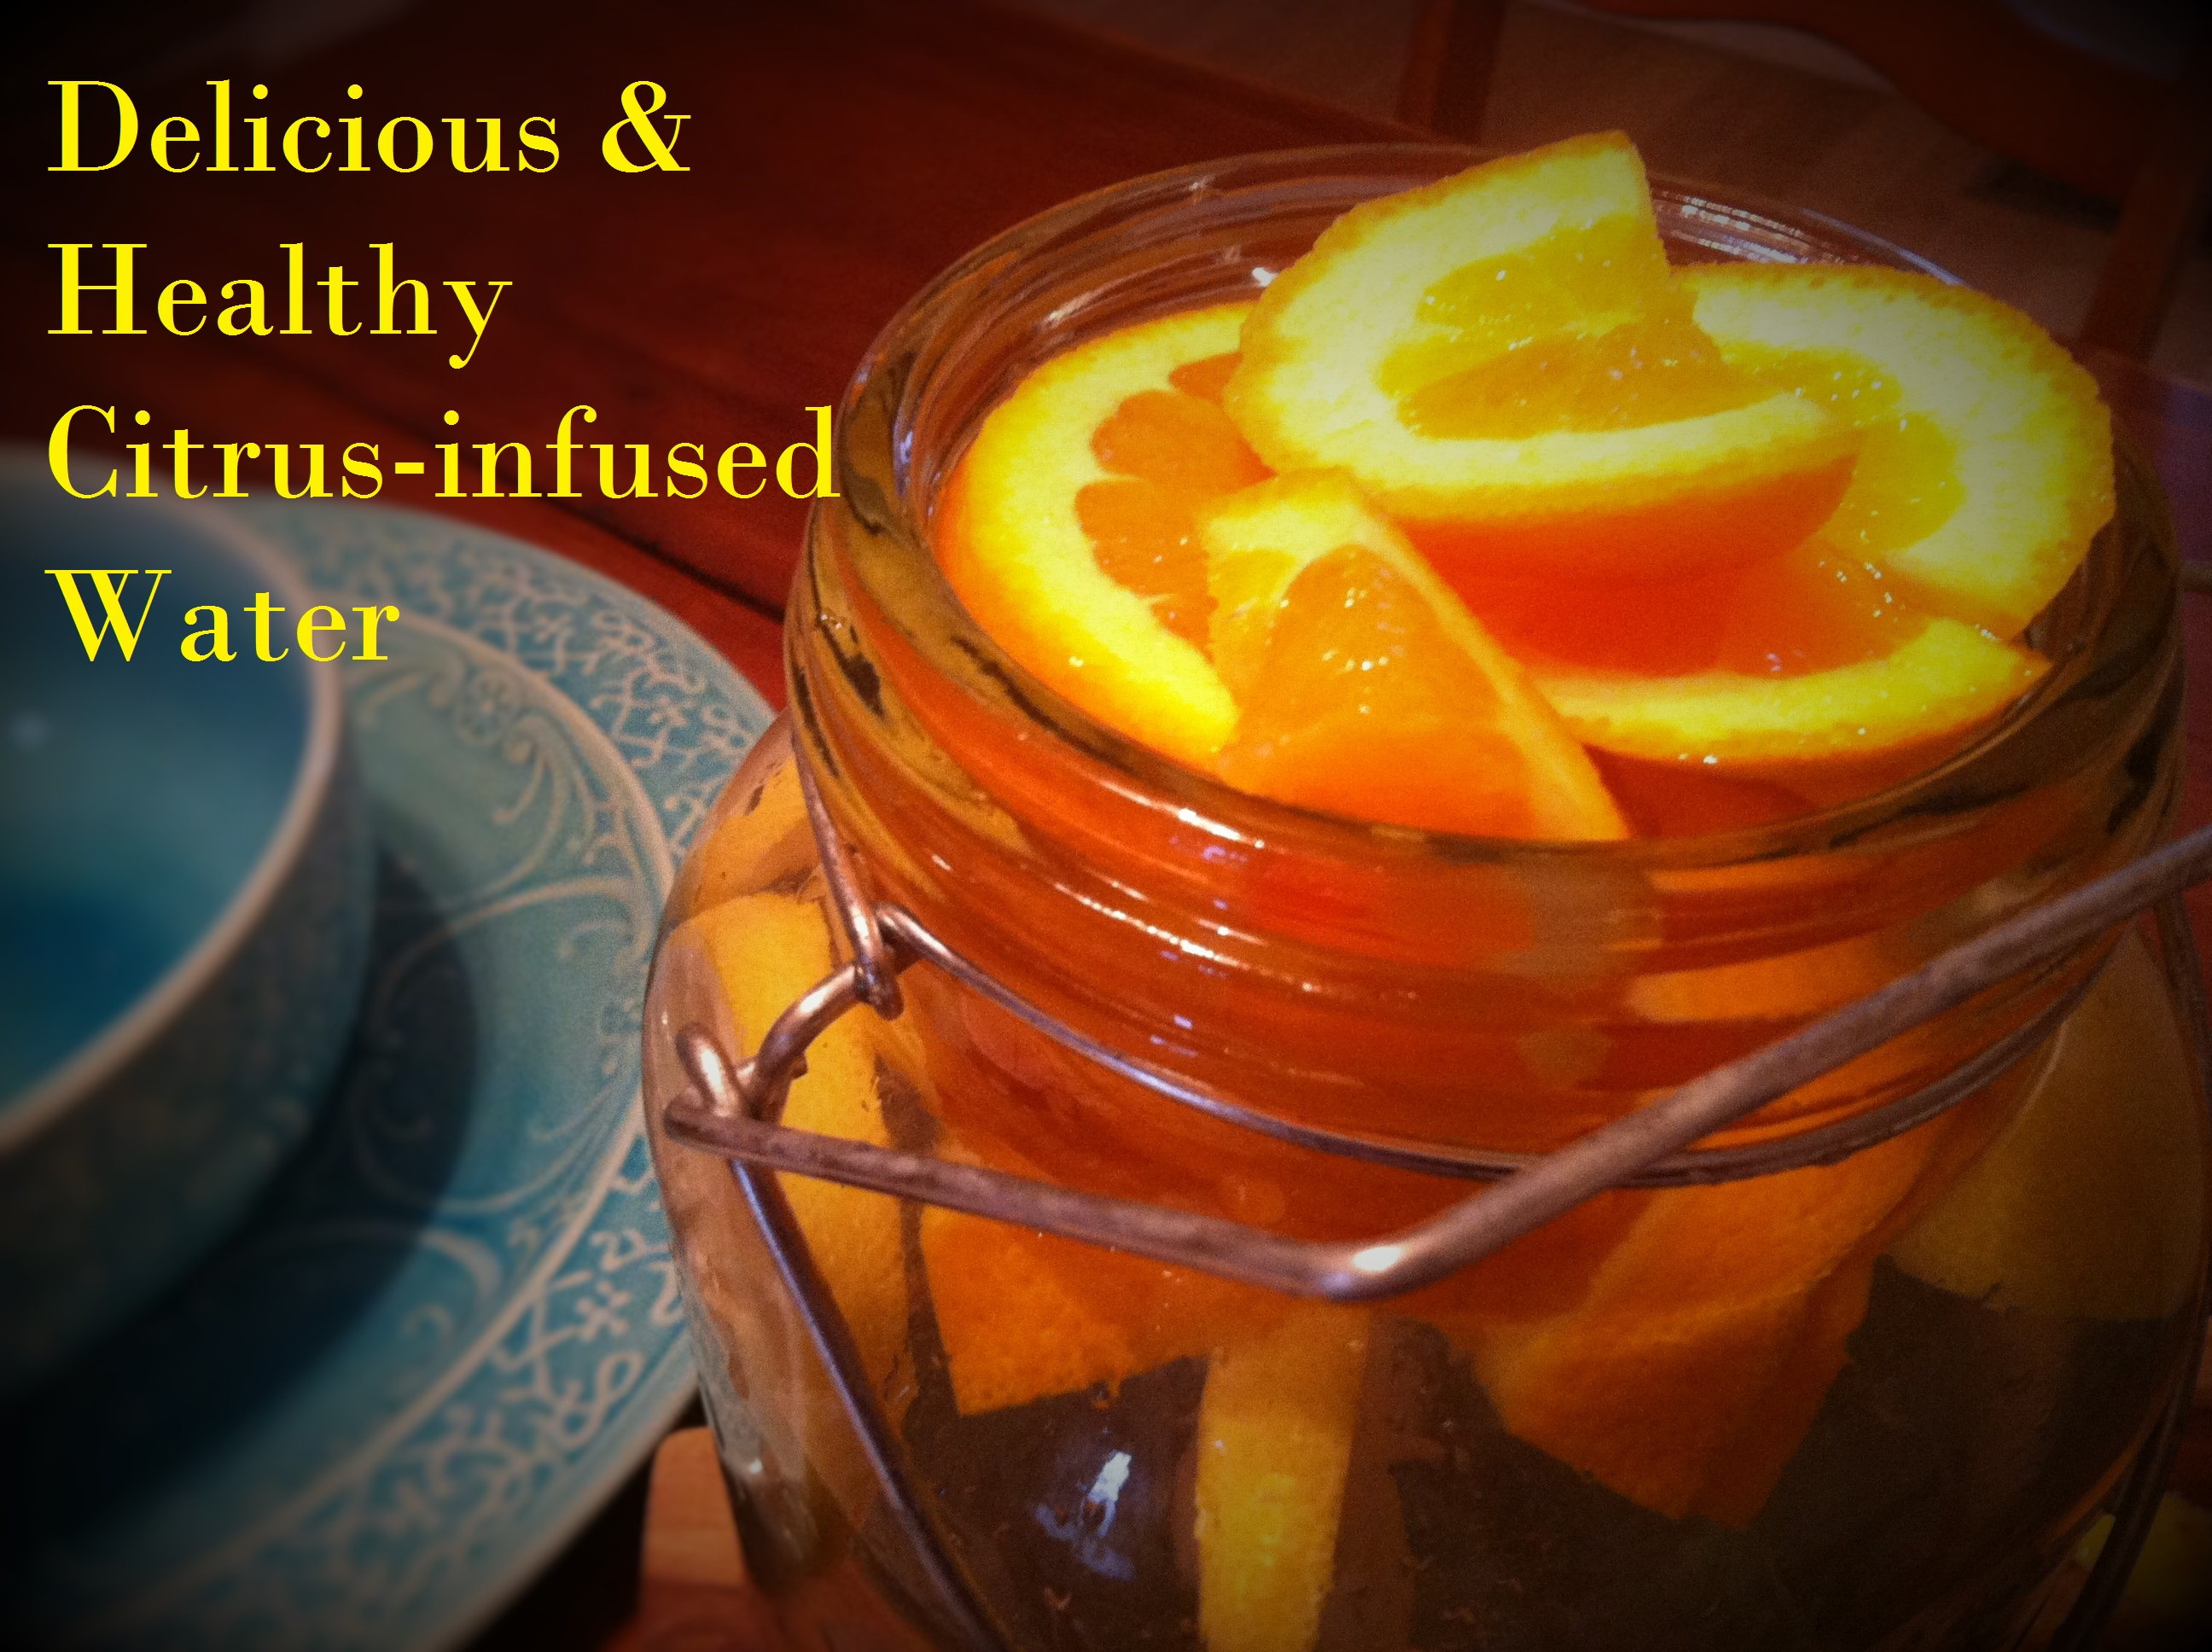 Delicious and healthy citrus-infused water. Other flavors posted, too!